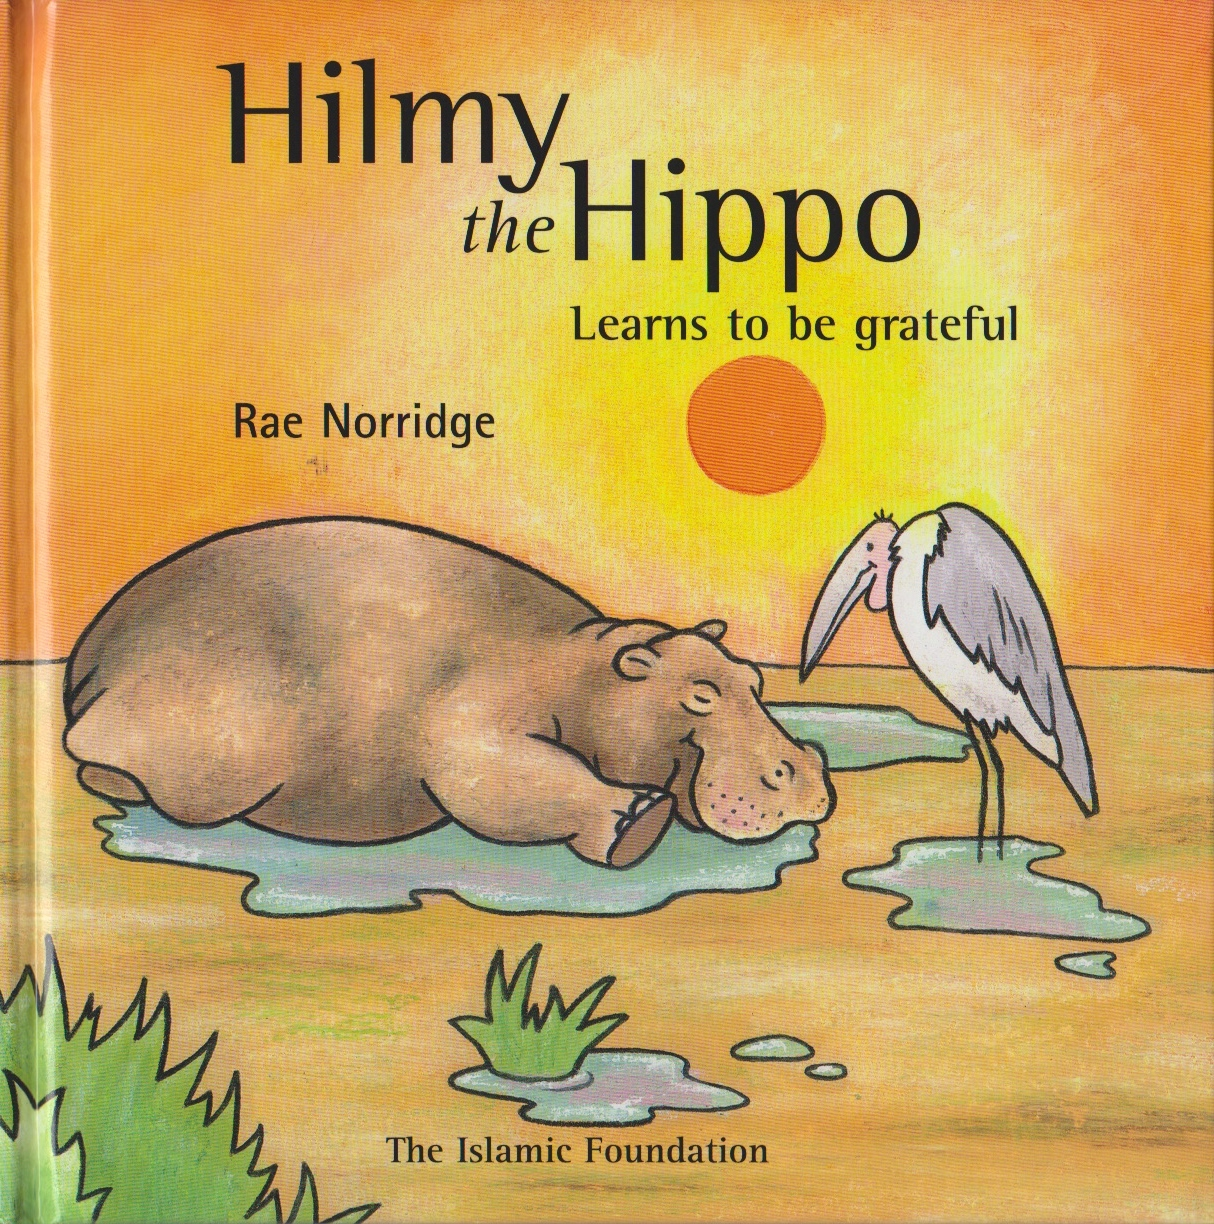 Hilmy the Hippo Learn to be Grateful